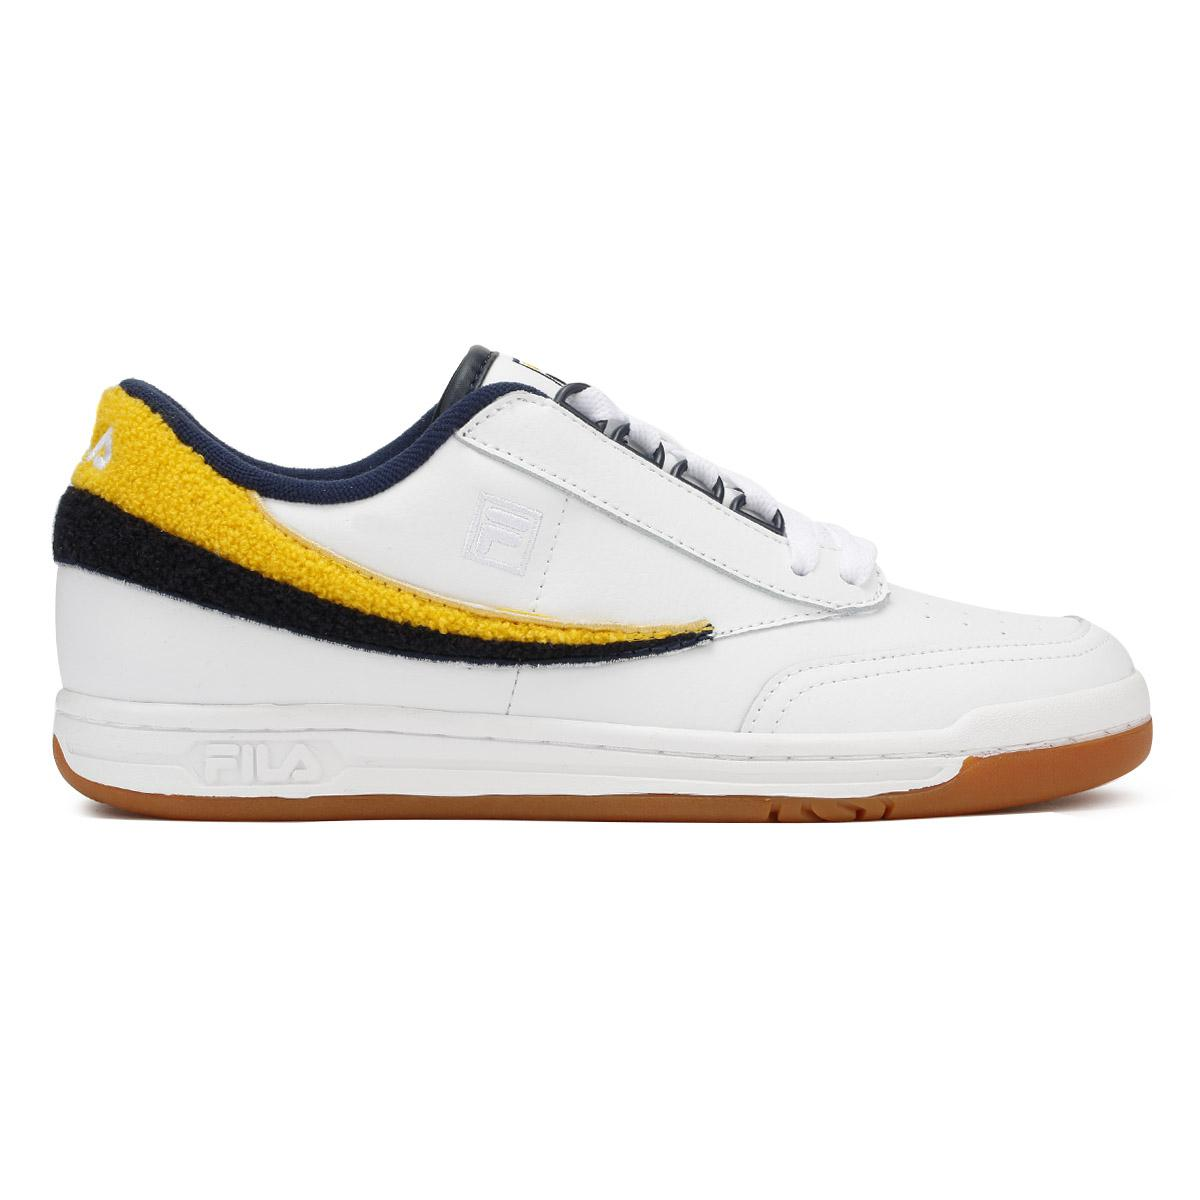 Fila Original tennis varsity trainer in white cheap price outlet sale cheap sale finishline factory outlet cheap online buy cheap pictures visit new sale online 9ldt1OJ